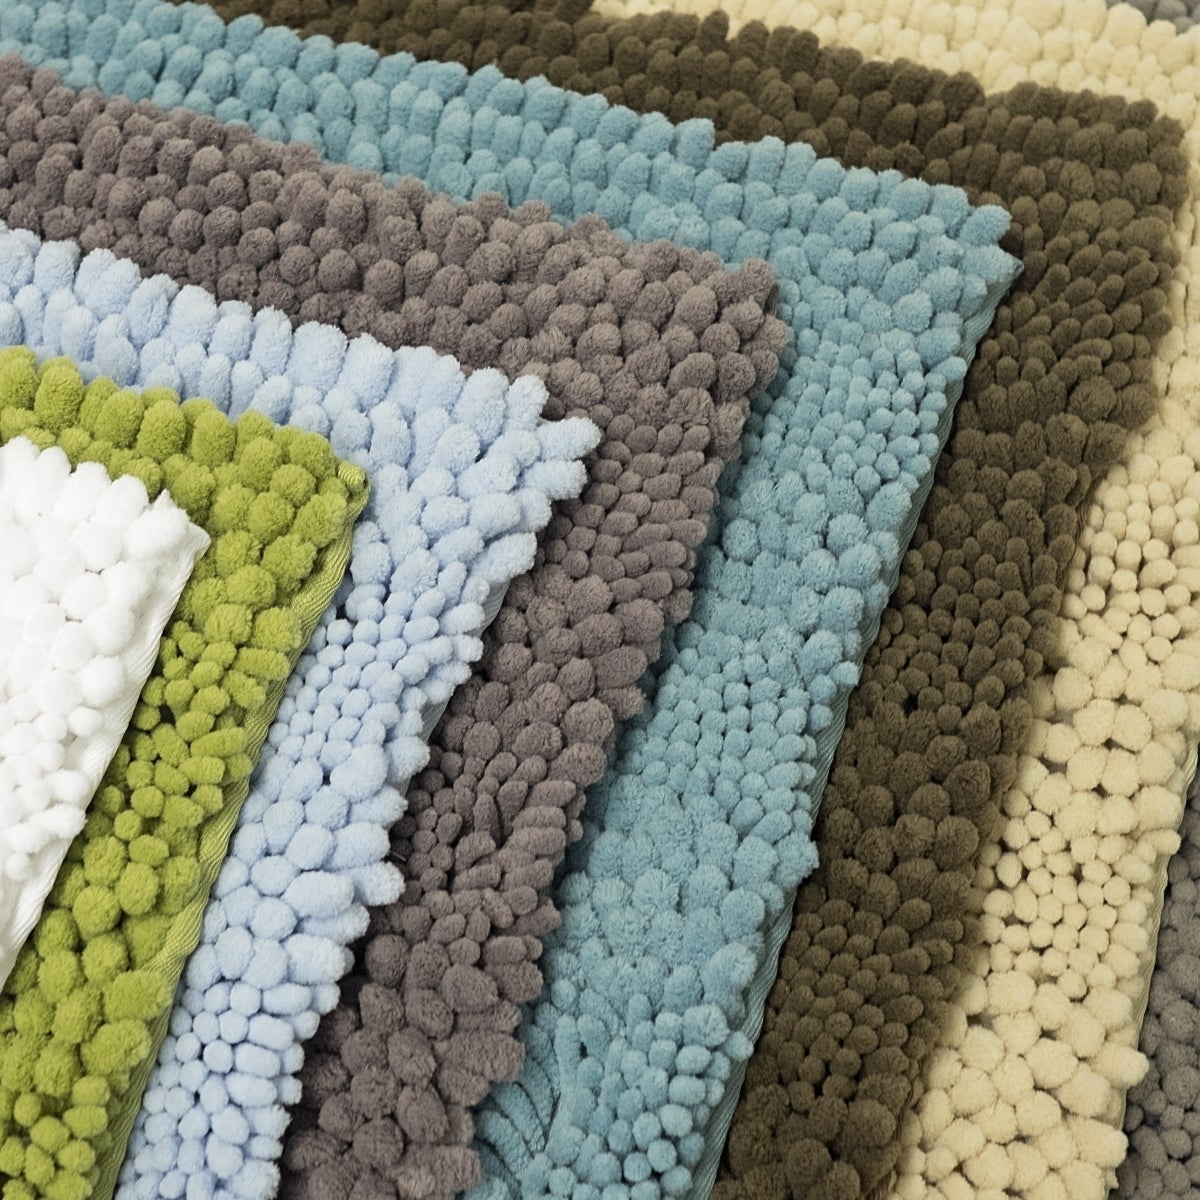 Sweet Home Collection 2 Piece Chenille Bathroom Rug Set Assorted Colors On Sale Overstock 18615819 Taupe